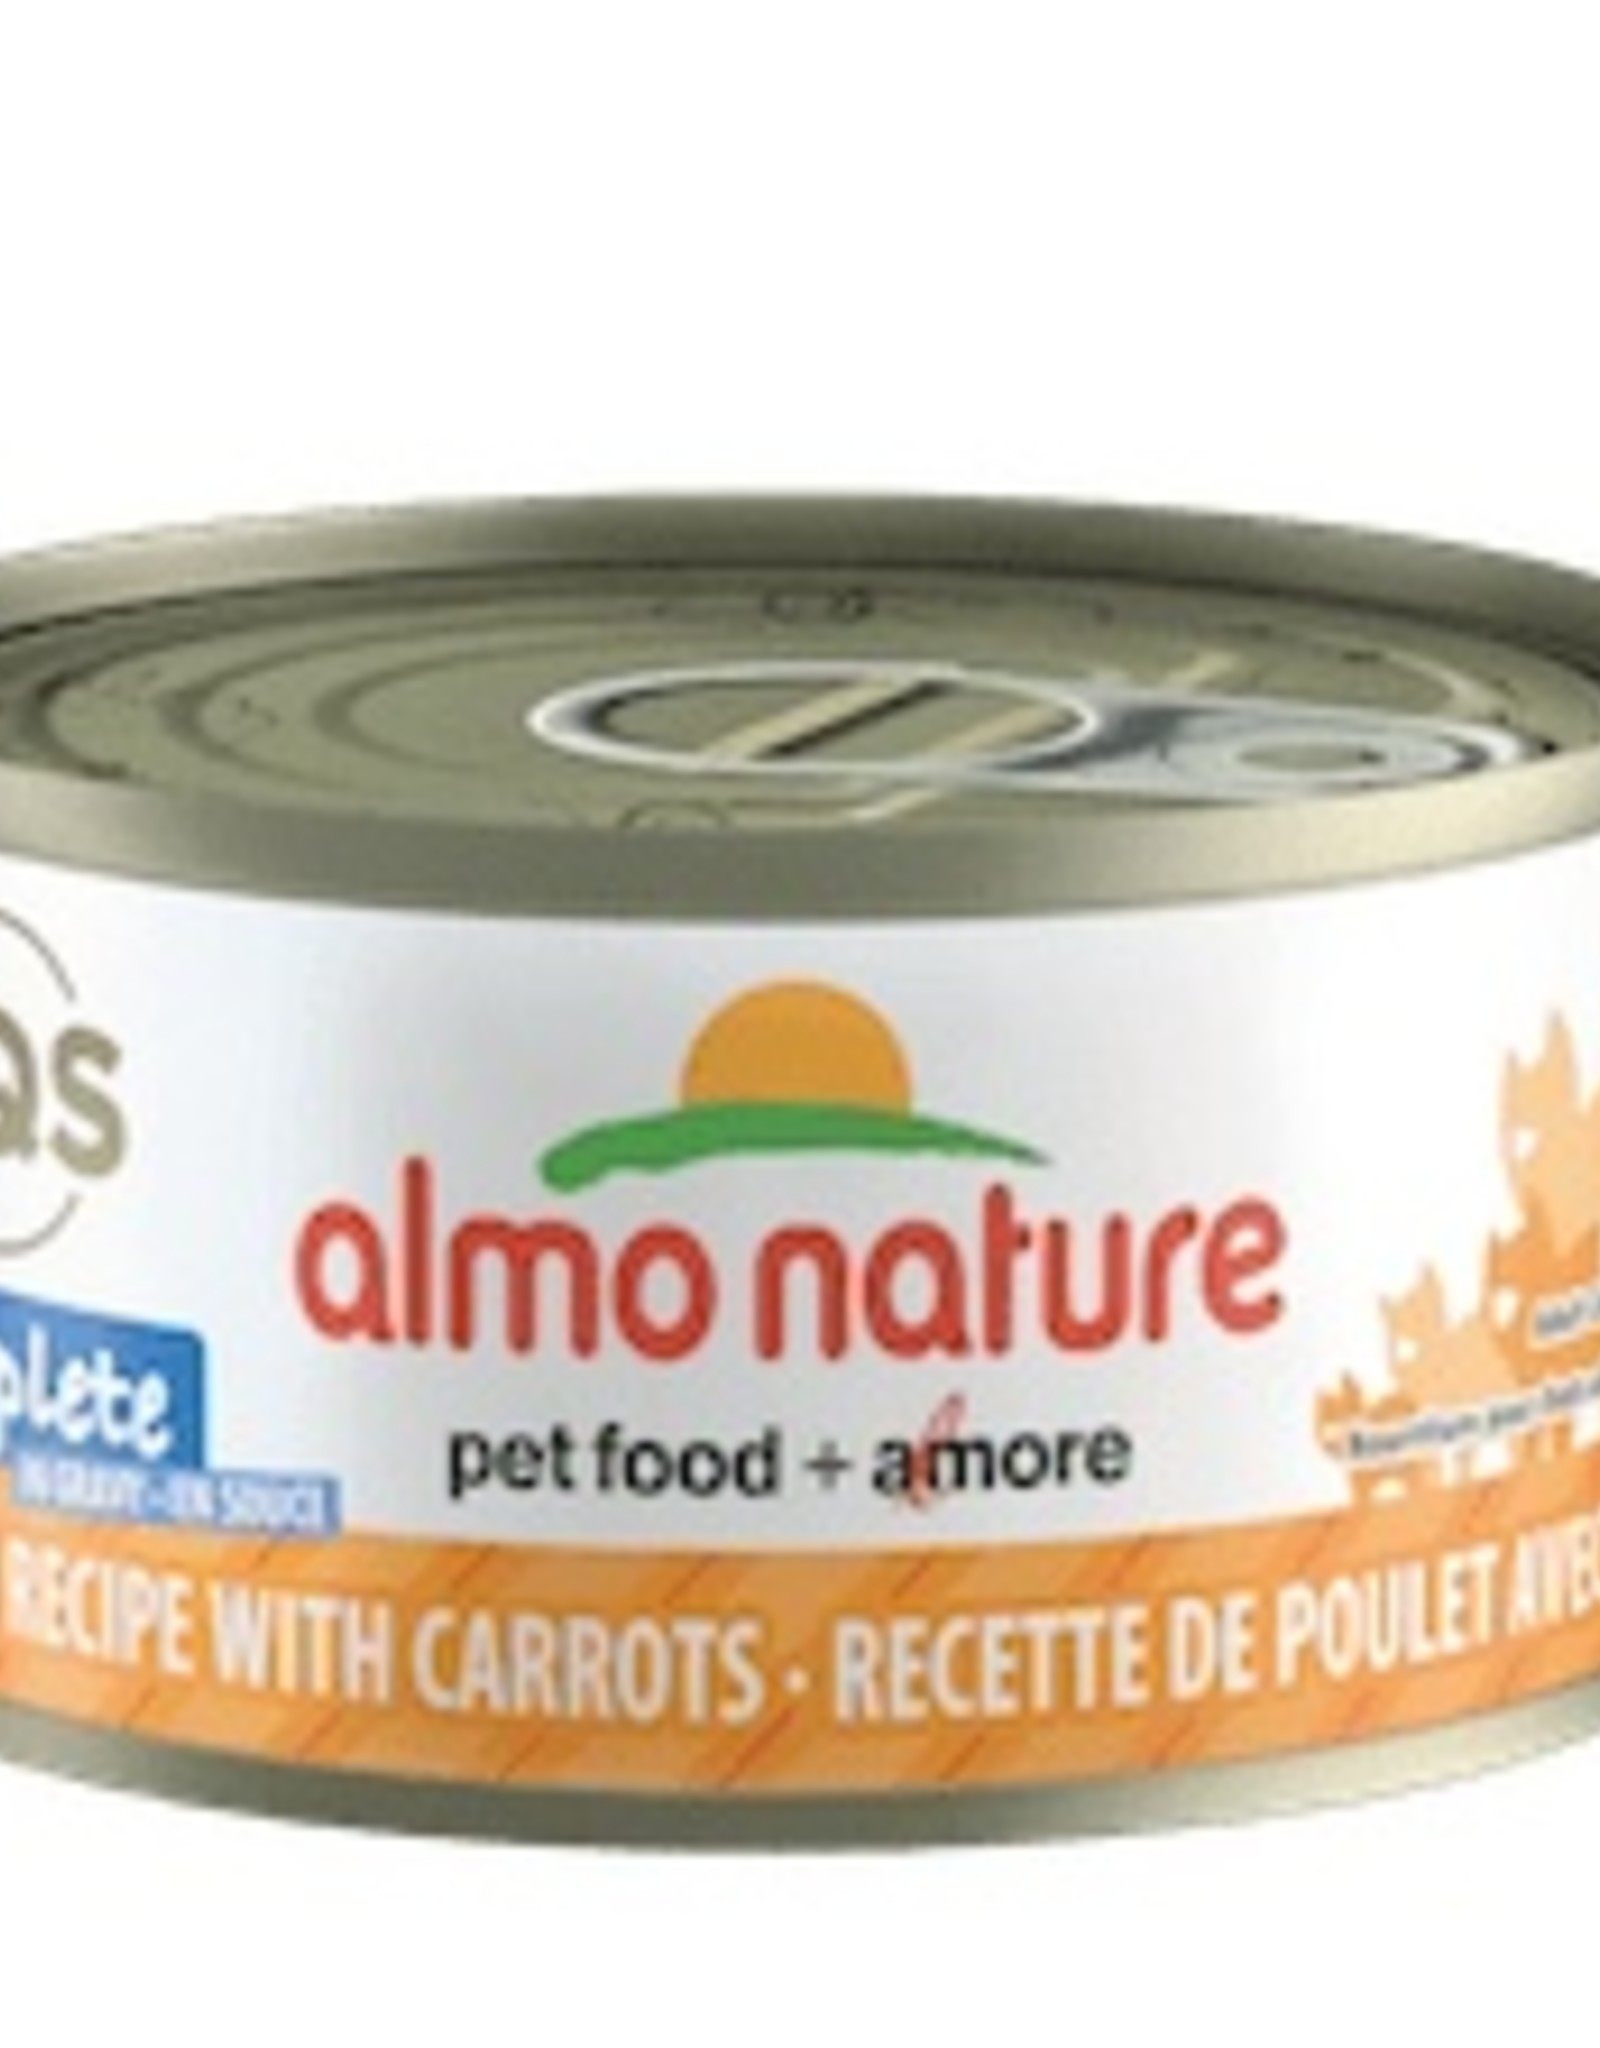 Almo Nature Almo Nature Chicken Carrot 2.47oz